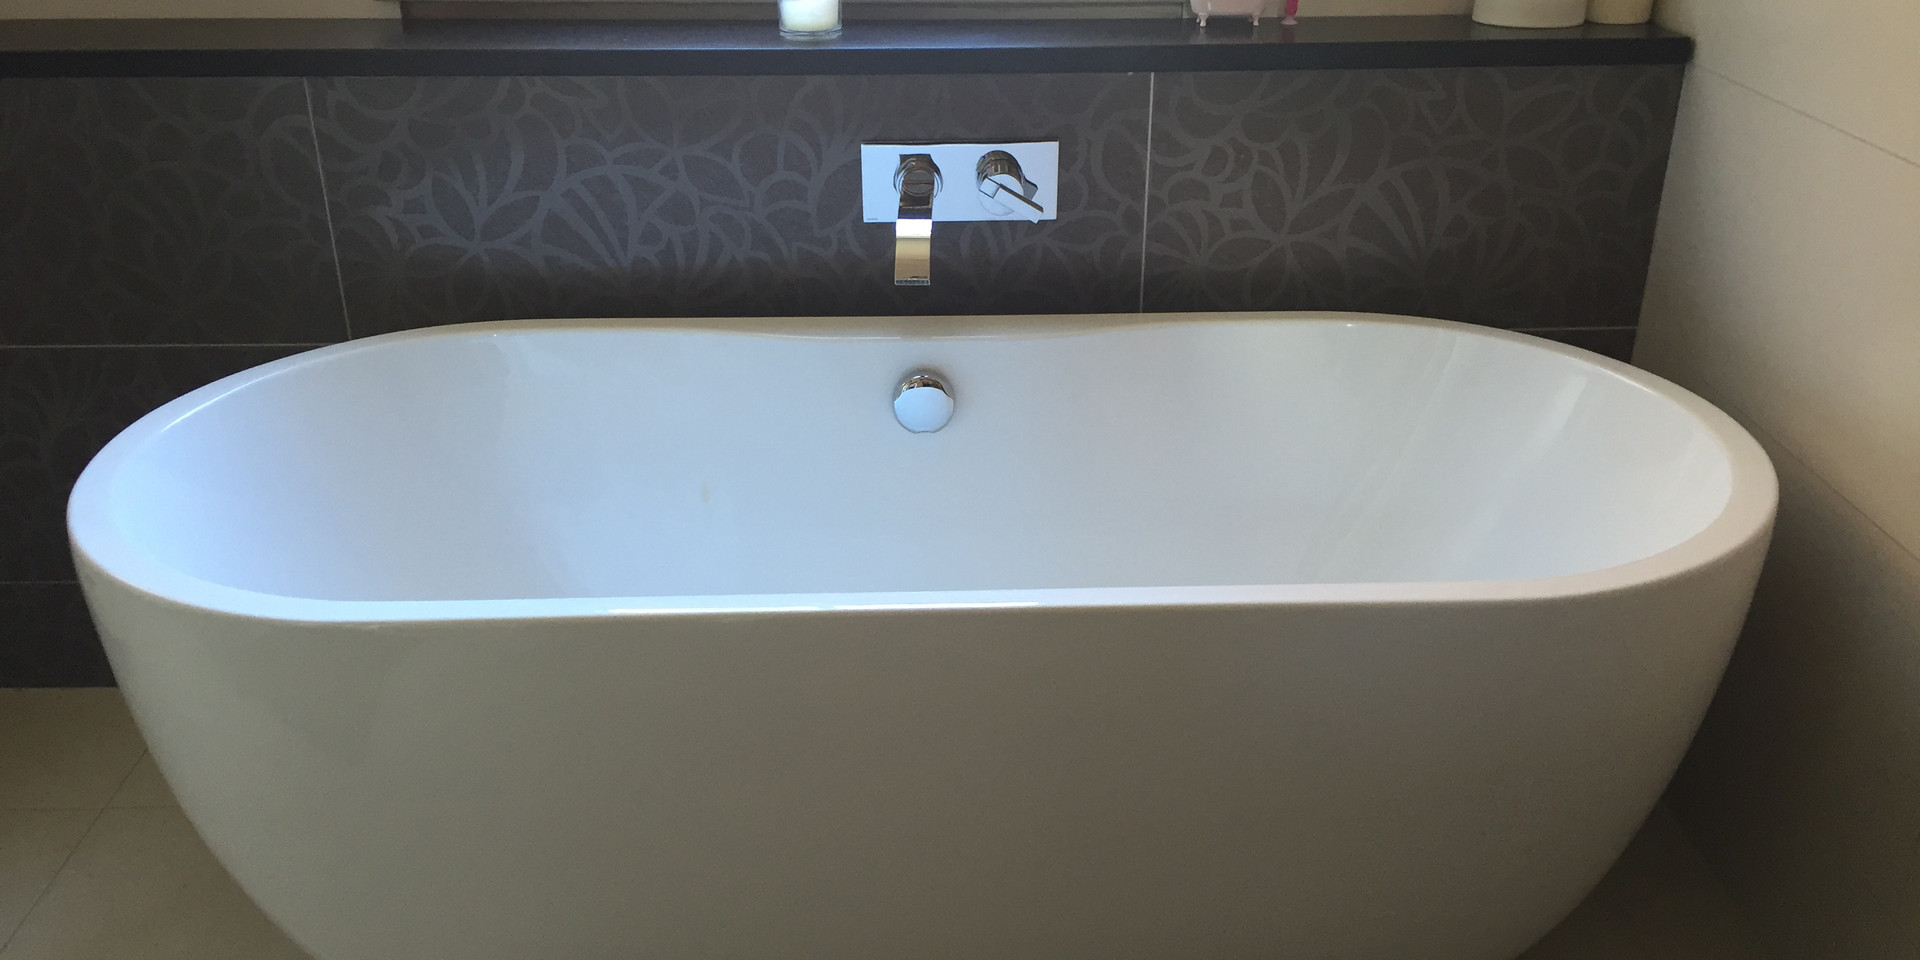 Plumber Newport Pagnell Bathroom